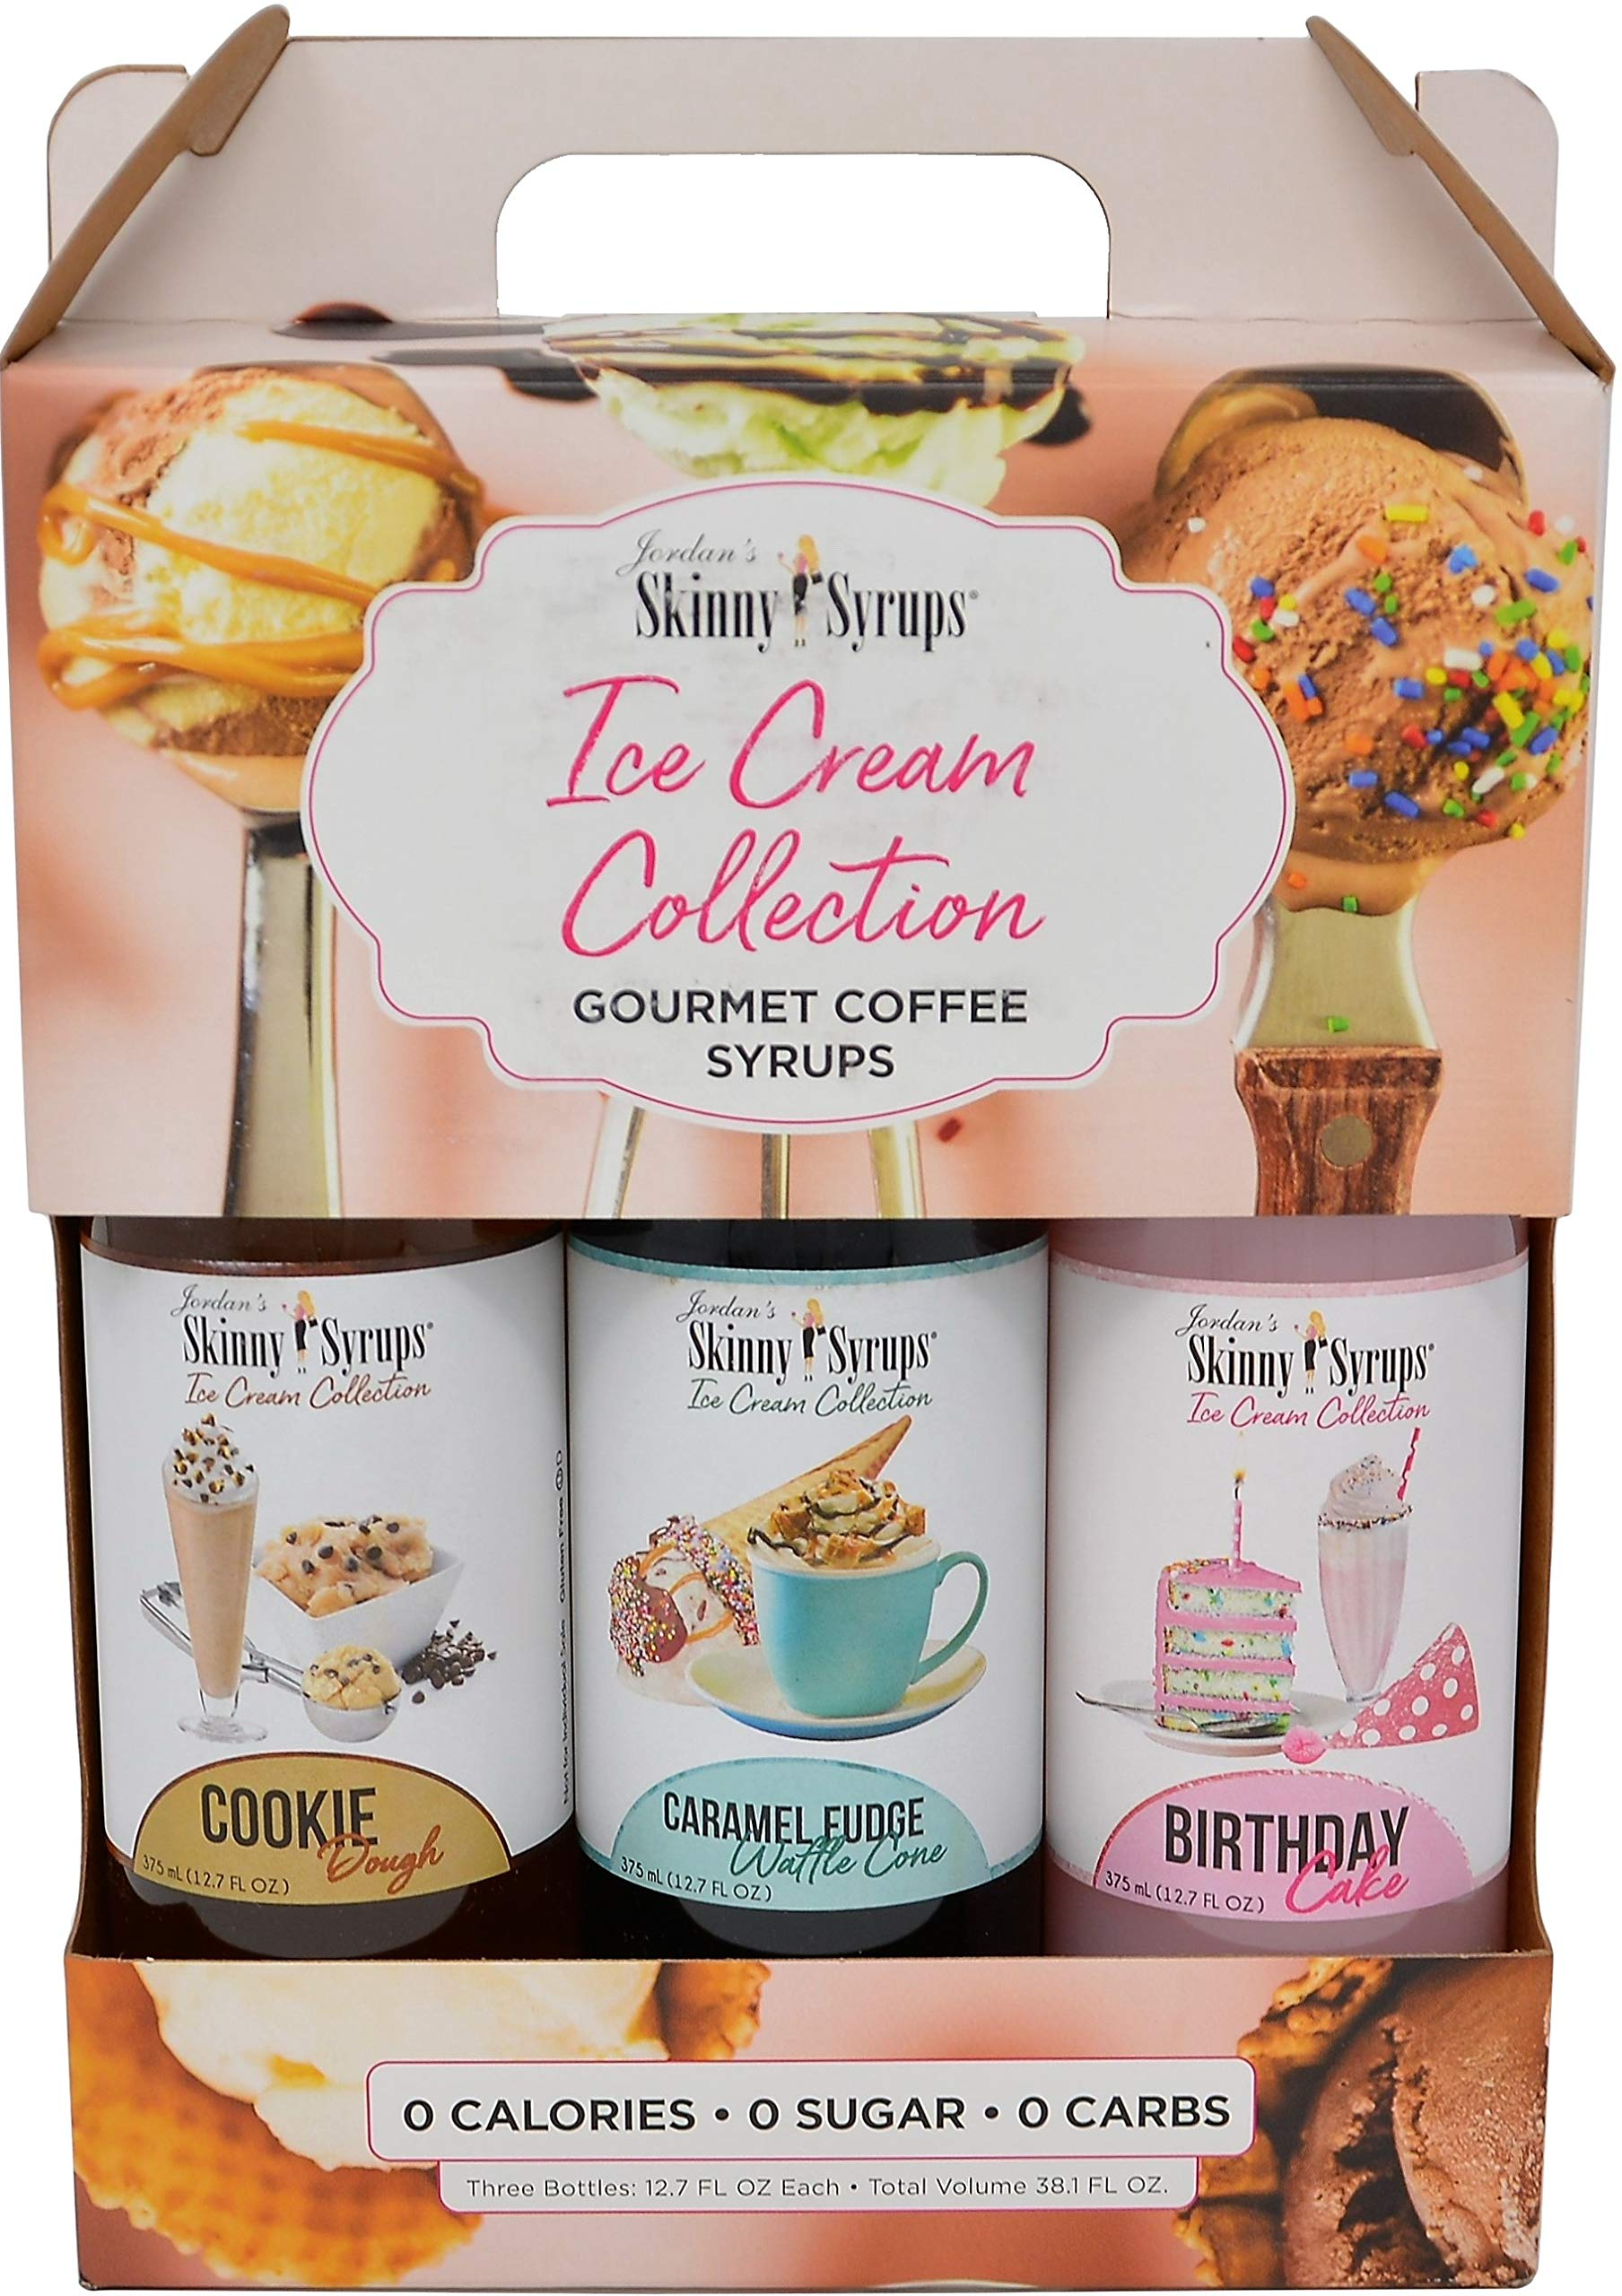 Jordans Skinny Syrups Sugar Free Ice Cream Collection Trio Gift Box 12.7 Ounce Bottles with By The Cup Coasters by By The Cup (Image #2)